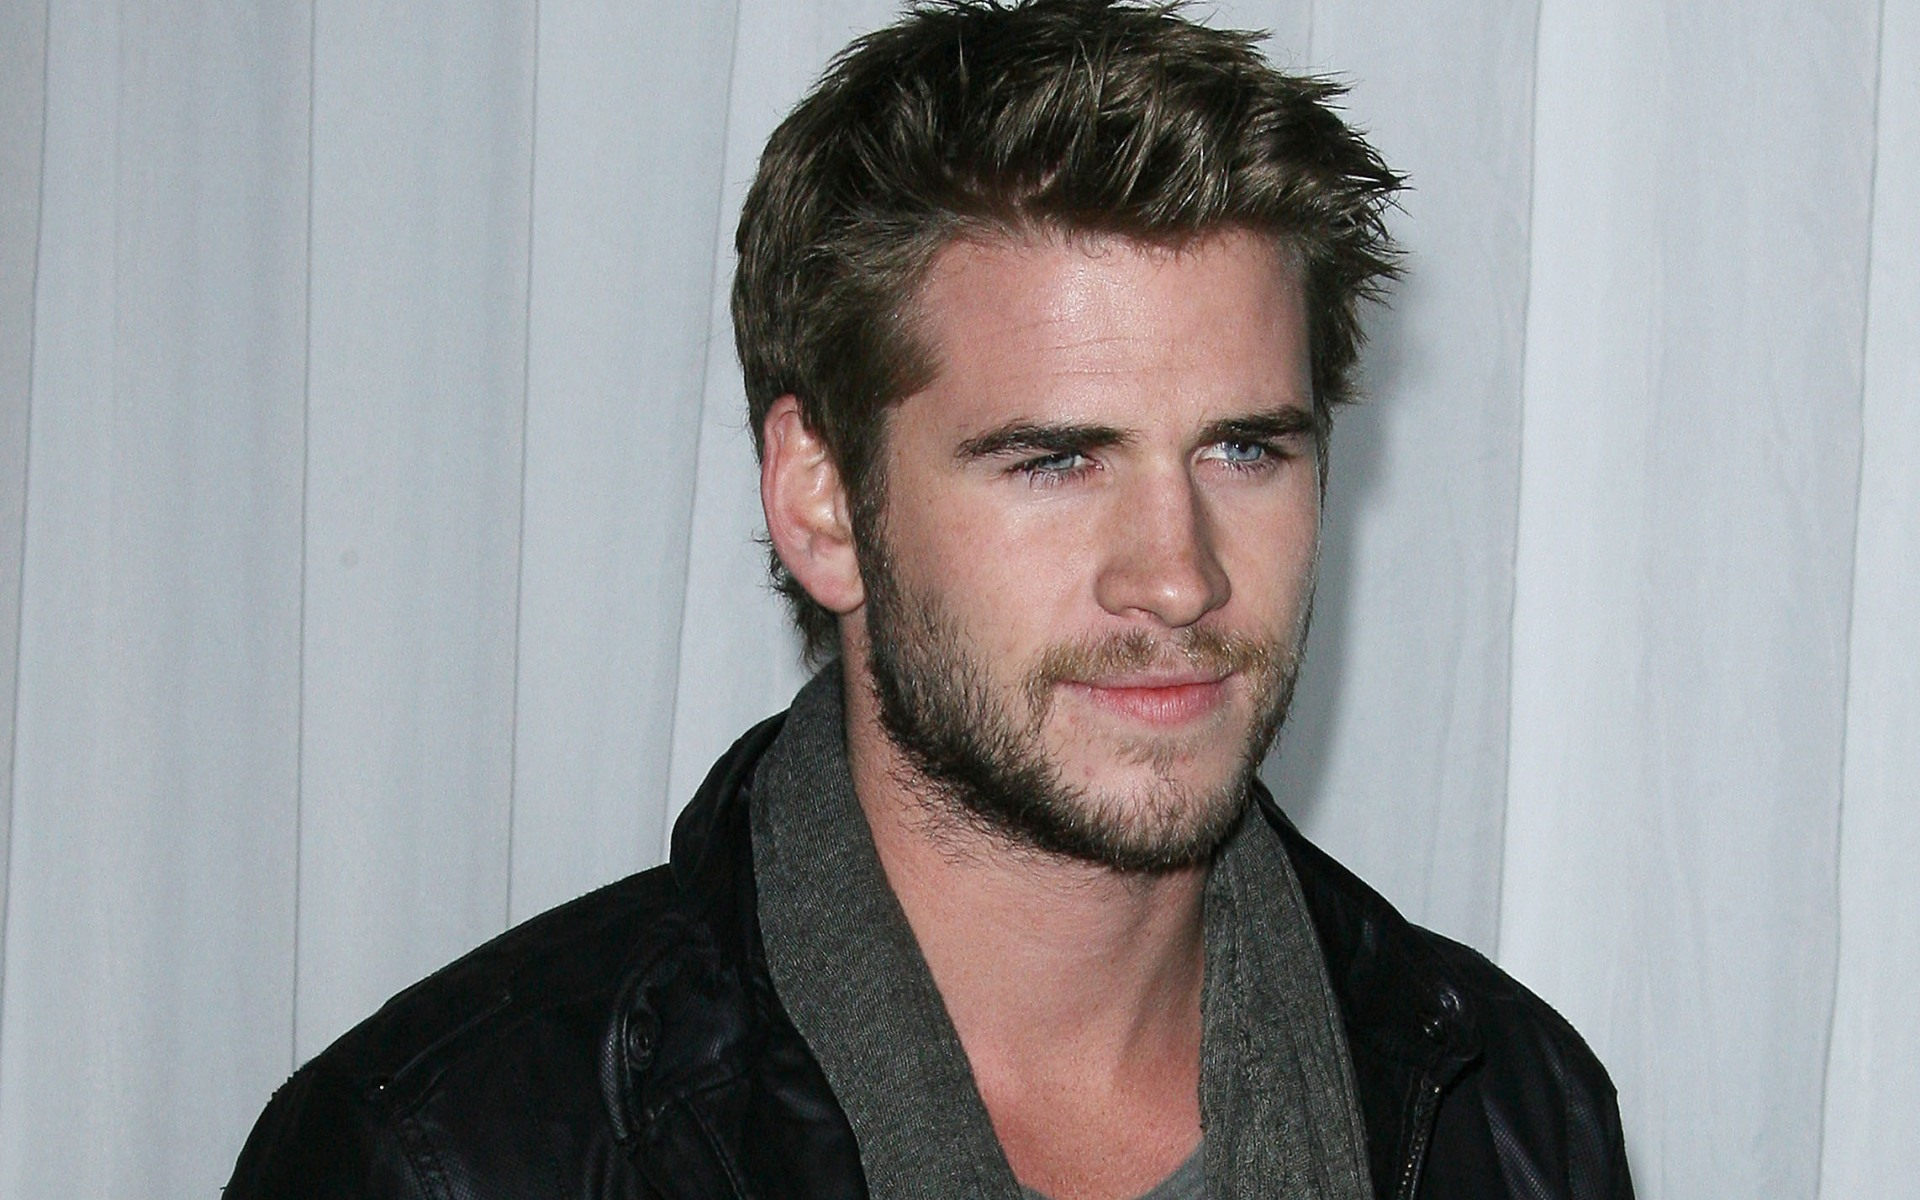 Liam Hemsworth Wallpapers High Resolution and Quality Download Liam